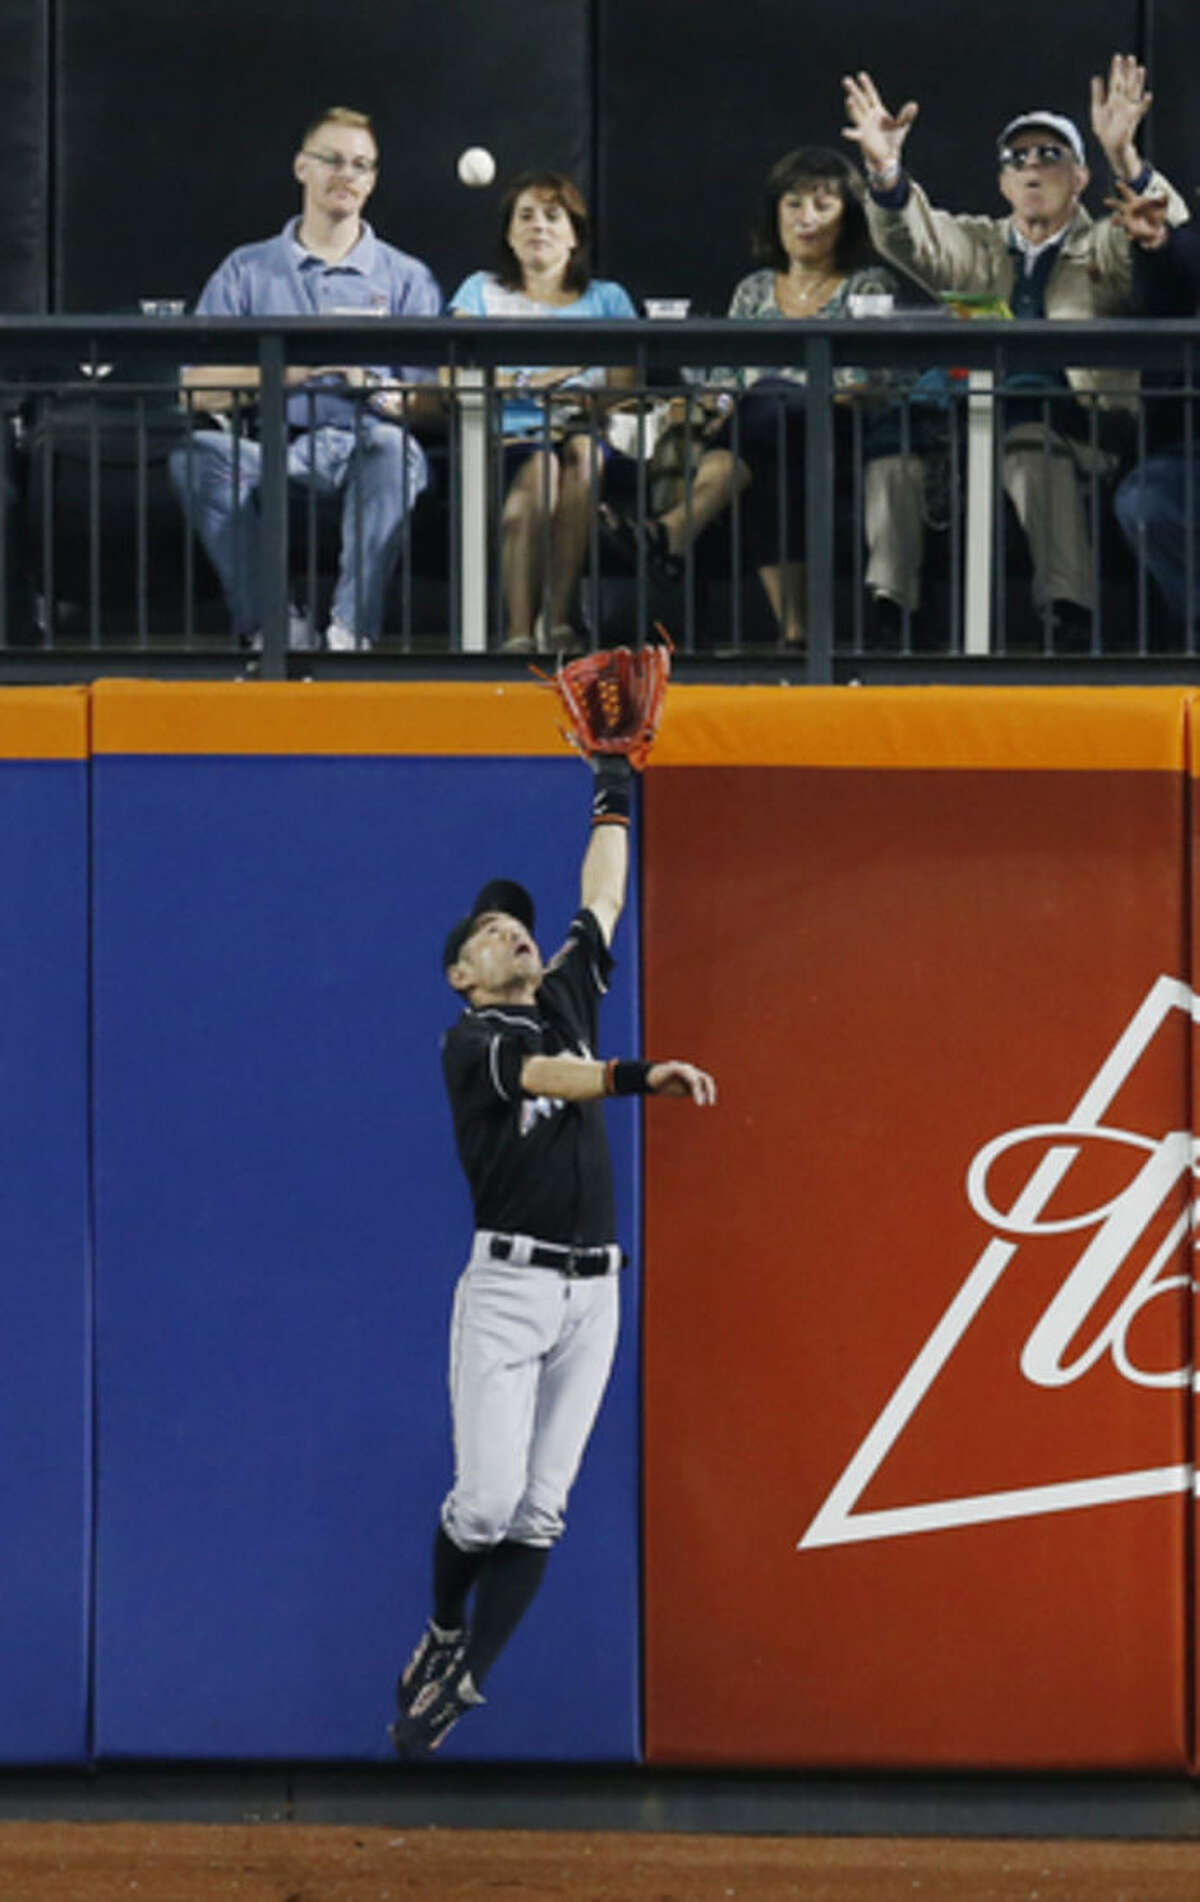 Miami Marlins left fielder Ichiro Suzuki leaps for a third-inning double by New York Mets' David Wright during a baseball game Wednesday, Sept. 16, 2015, in New York. (AP Photo/Kathy Willens)